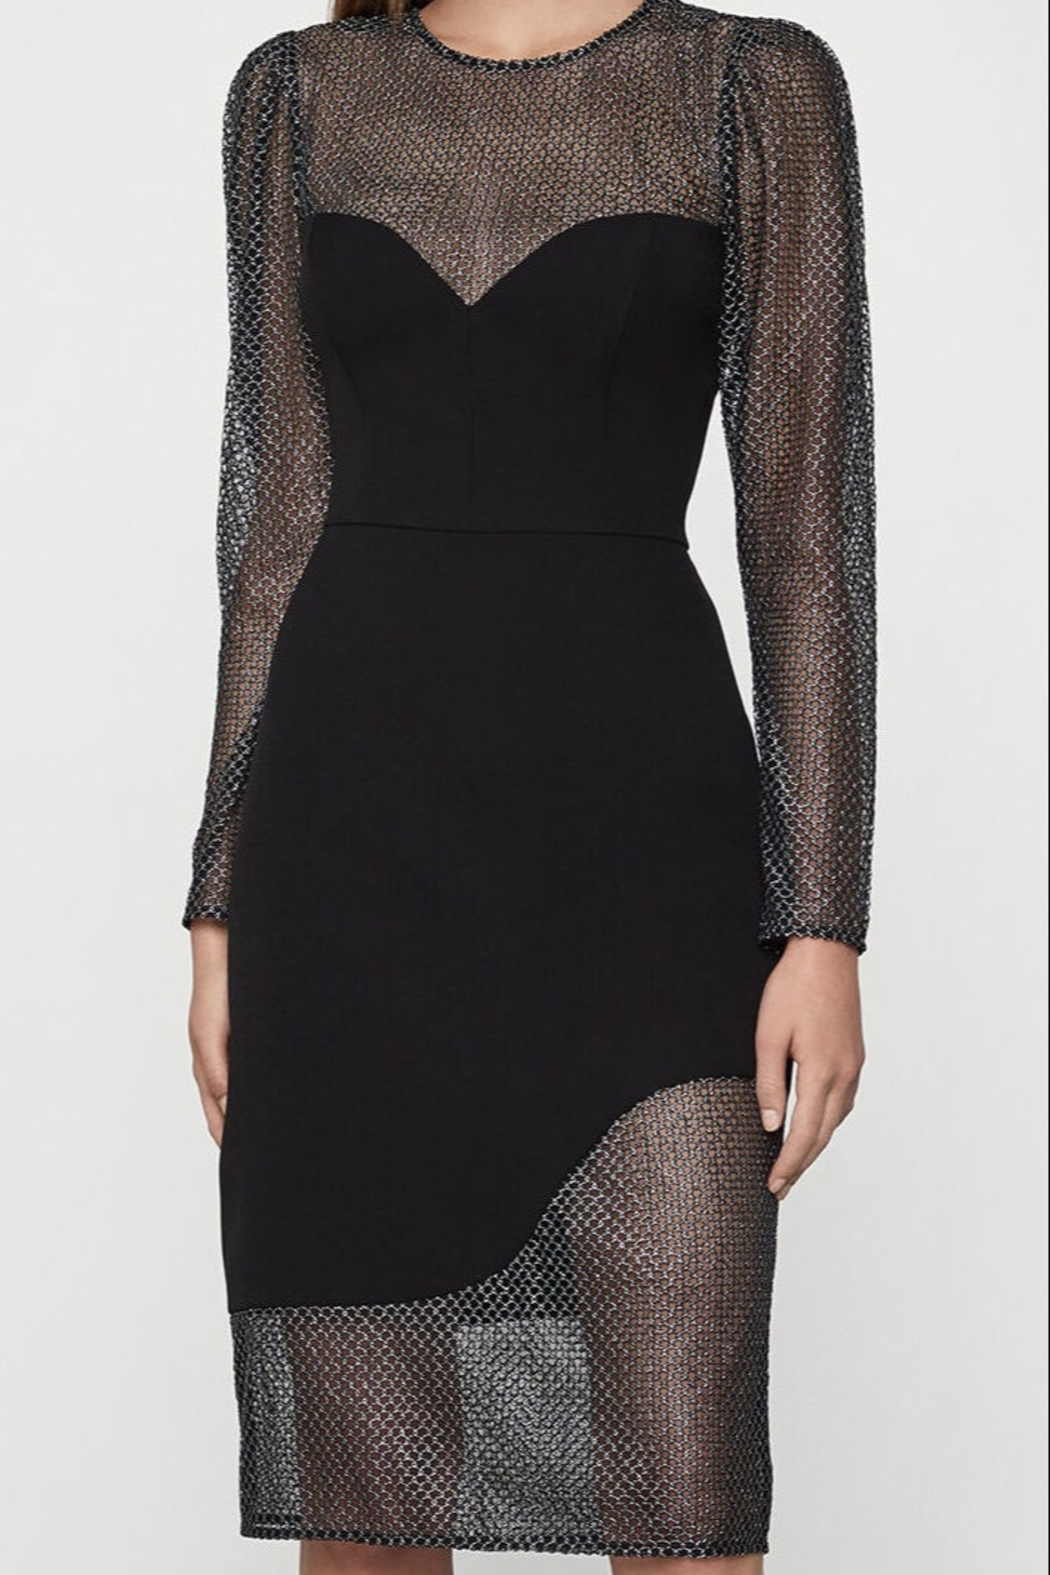 BCBG MAXAZRIA Chain Mail Dress - Front Cropped Image